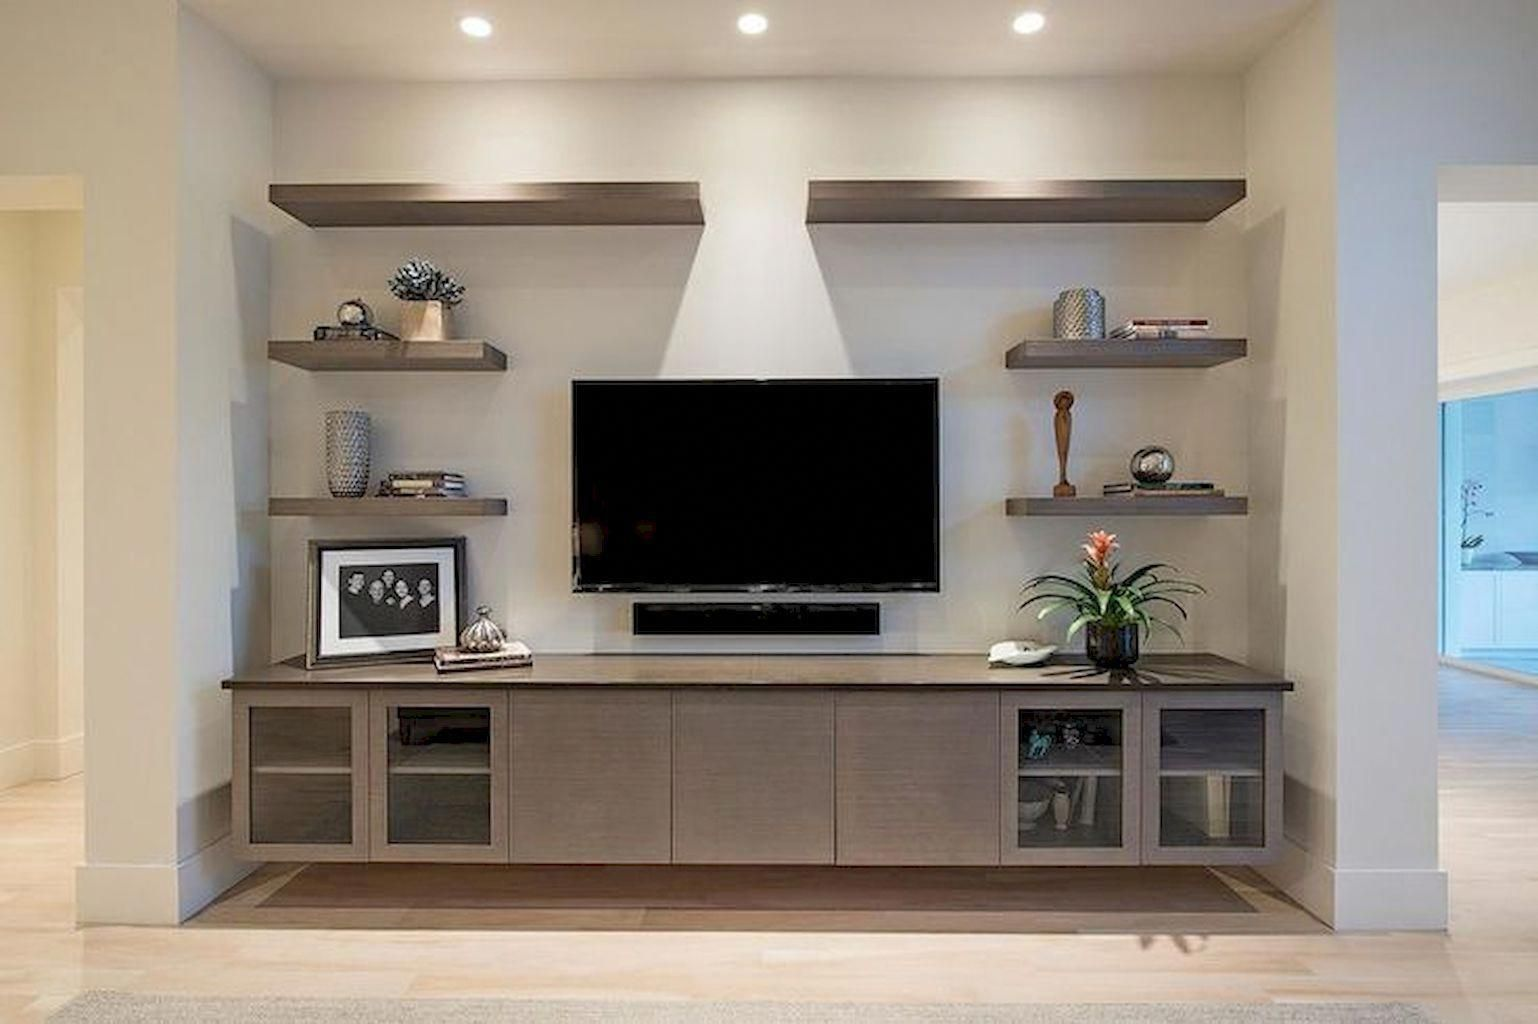 #livingroominspiration (With images) | Living room ...